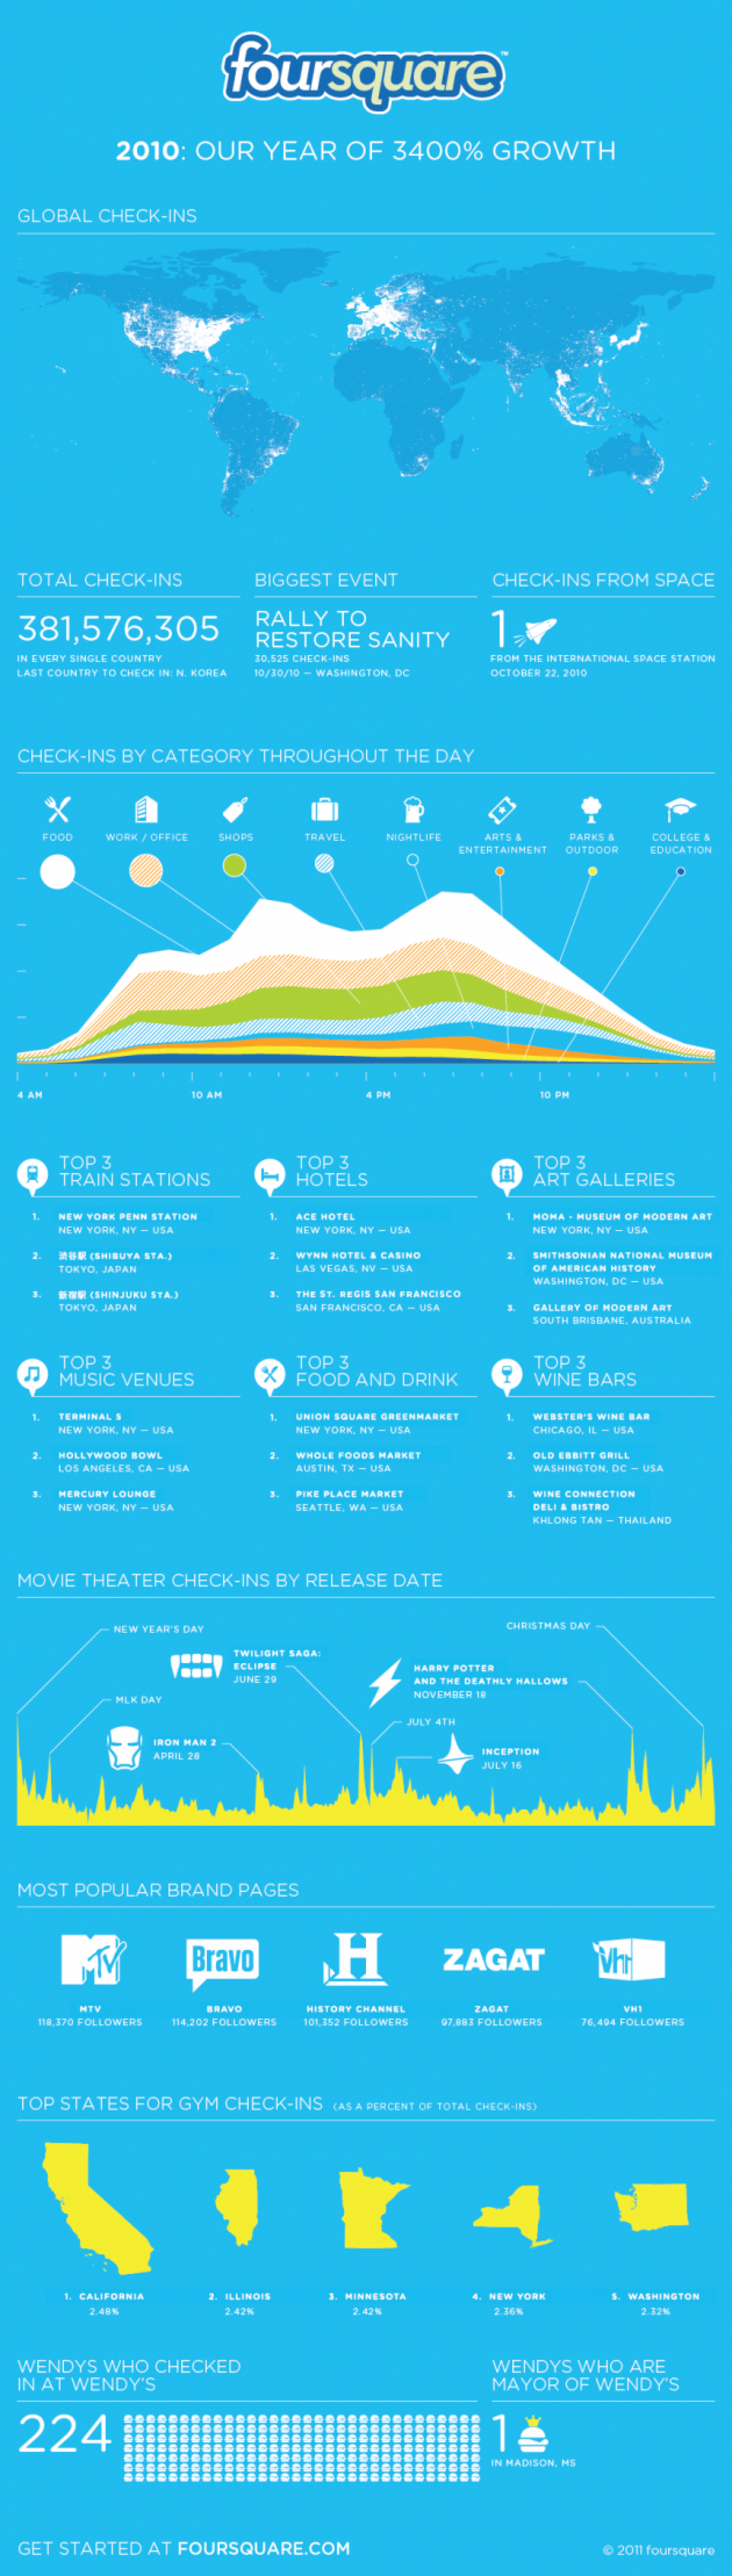 Foursquare 2010 Our Year of 3400% Growth Infographic